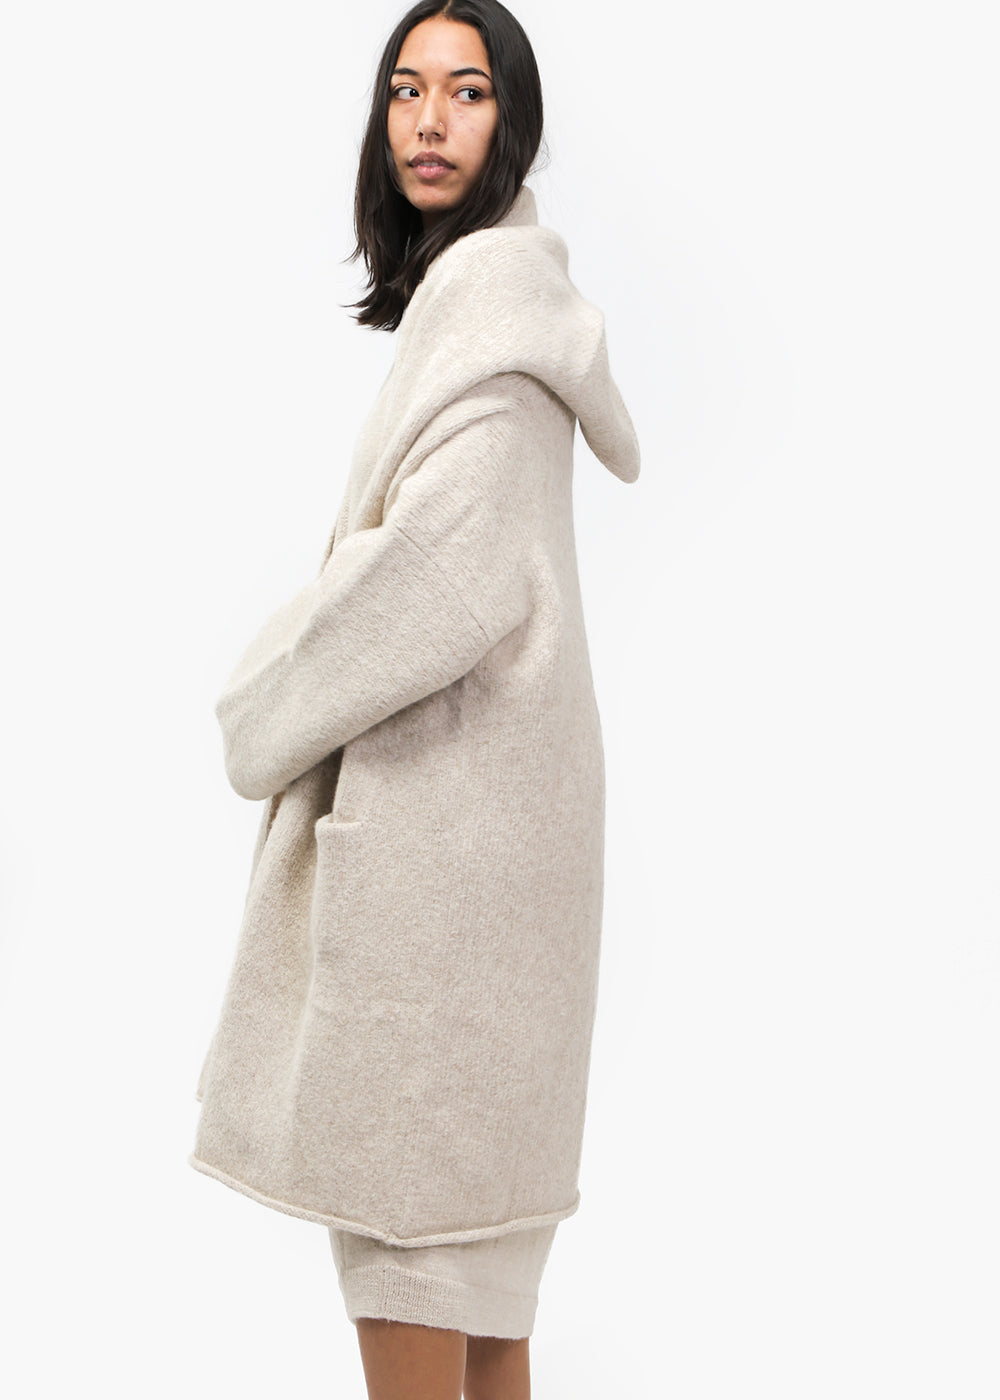 Lauren Manoogian Hessian Capote Coat — New Classics Studios